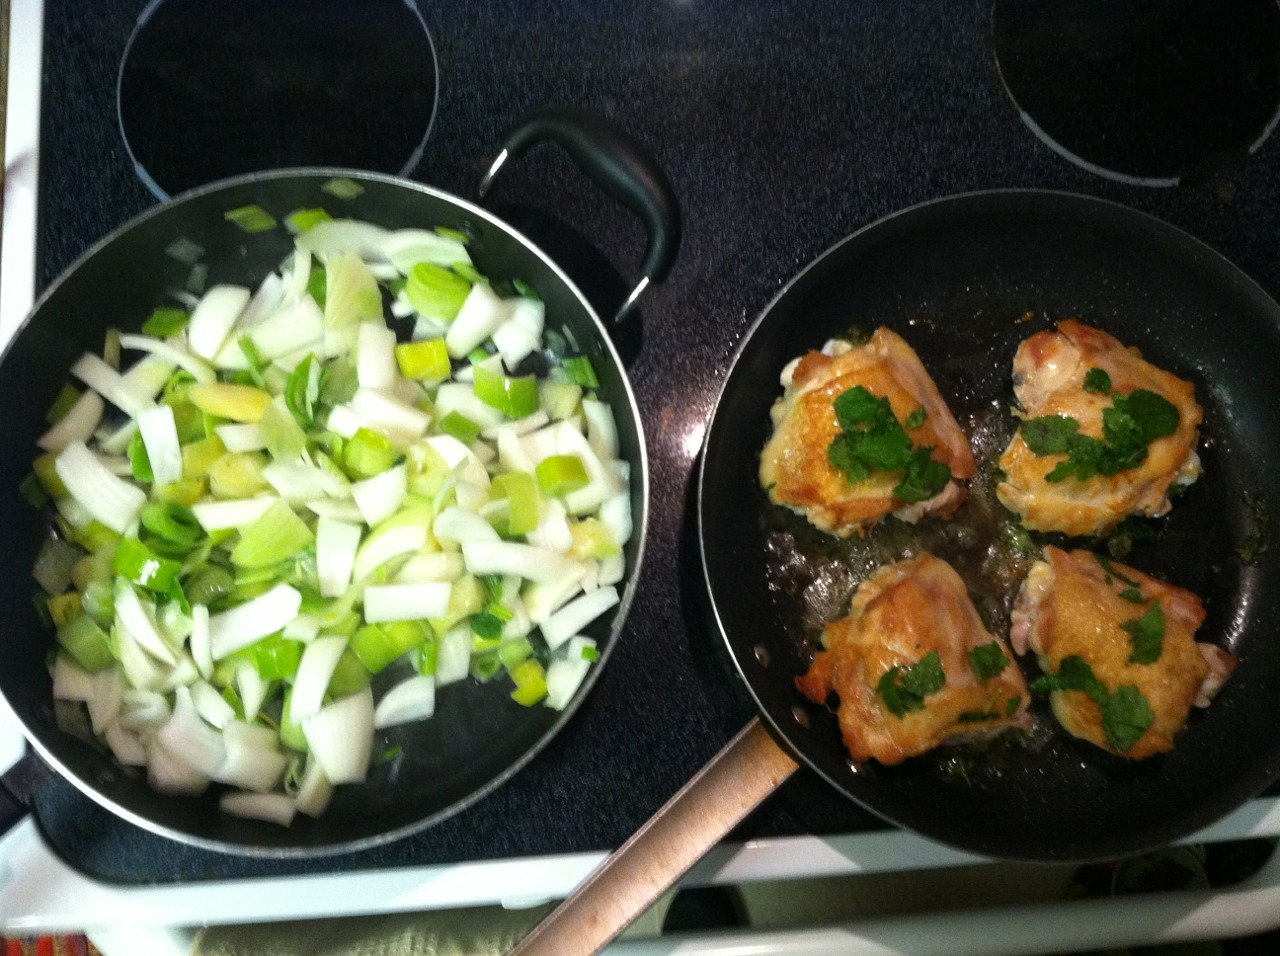 Sunday dinner: pineapple sage chicken and leeks with onions — not pictured: roasted baby potatoes with garlic and basil